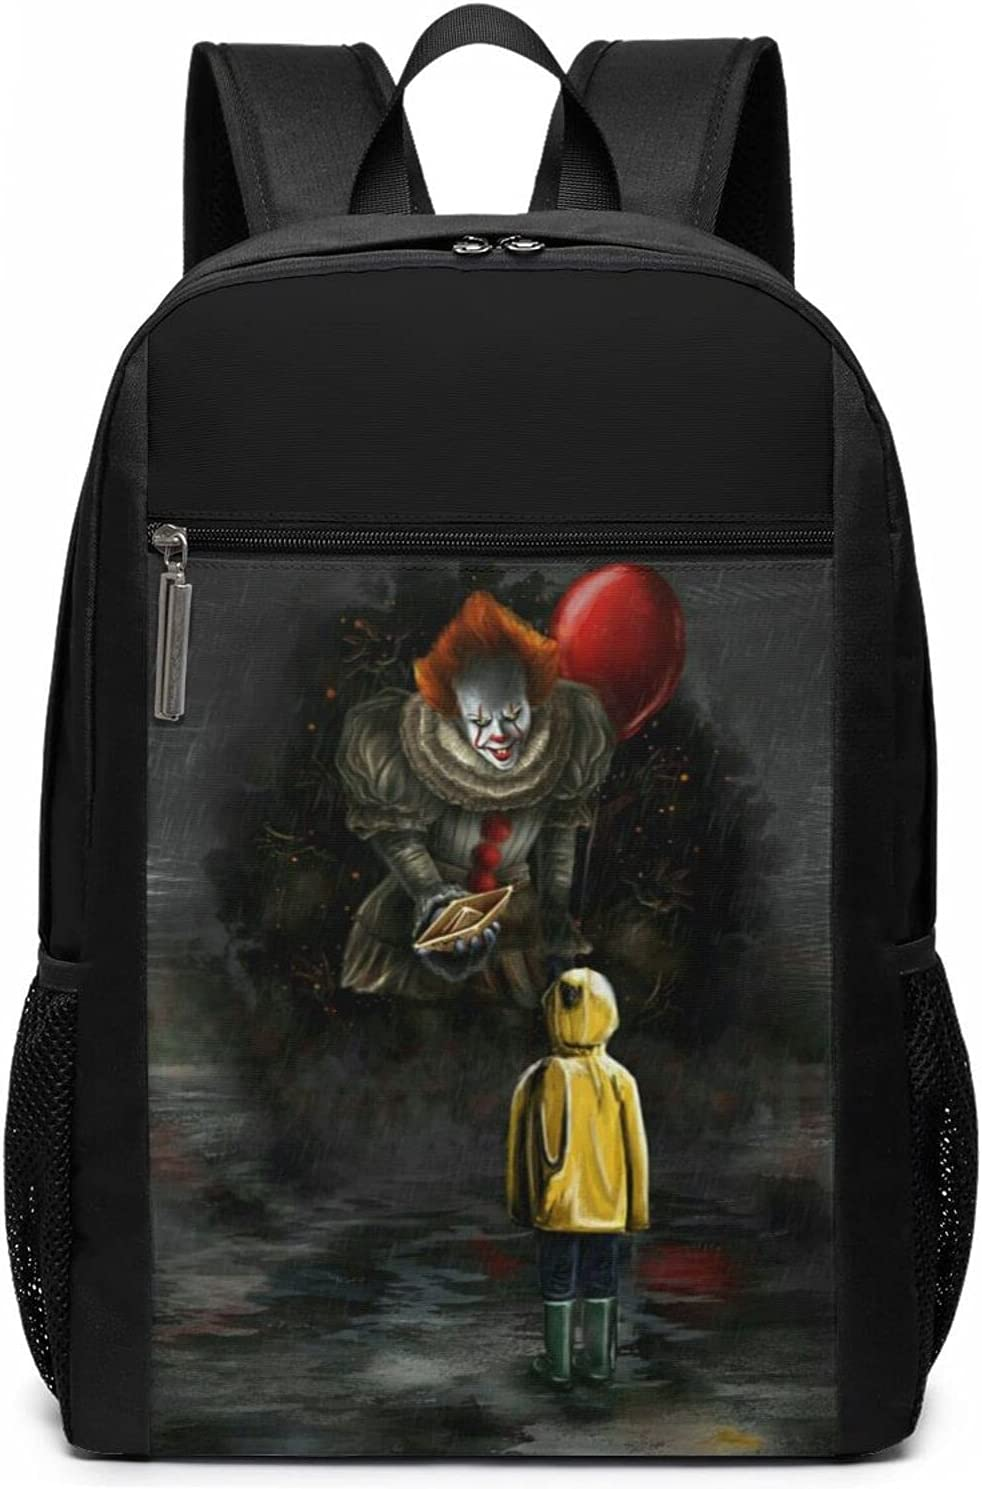 Chapter Penny Wise Laptop Backpack Travel Complete At the price of surprise Free Shipping Capacity High Business